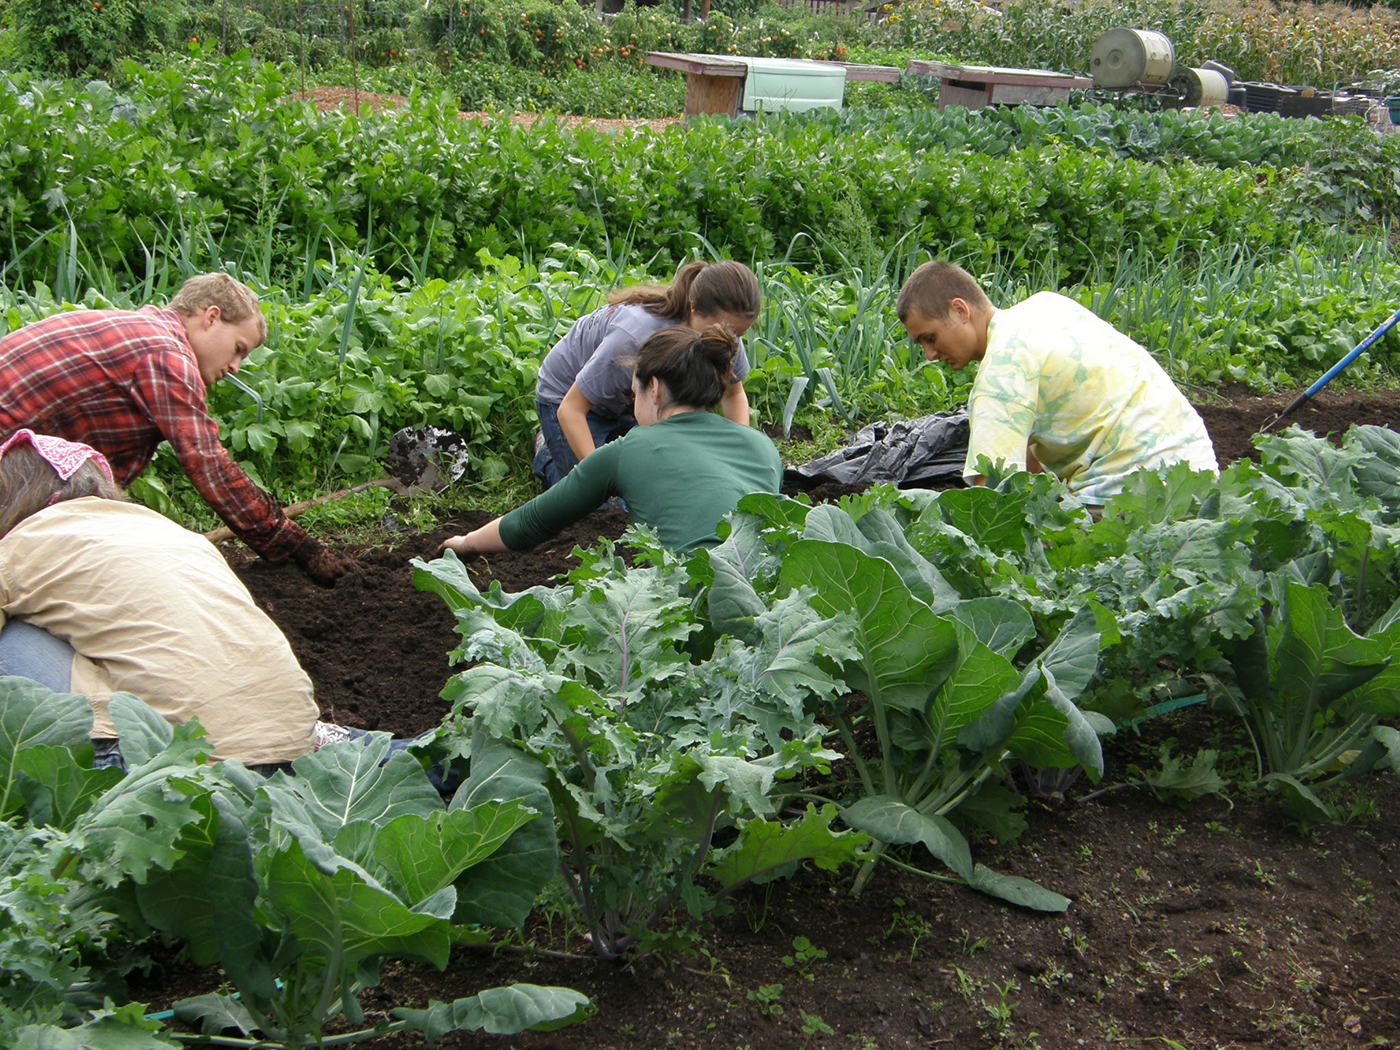 Students serve by helping in a community garden.